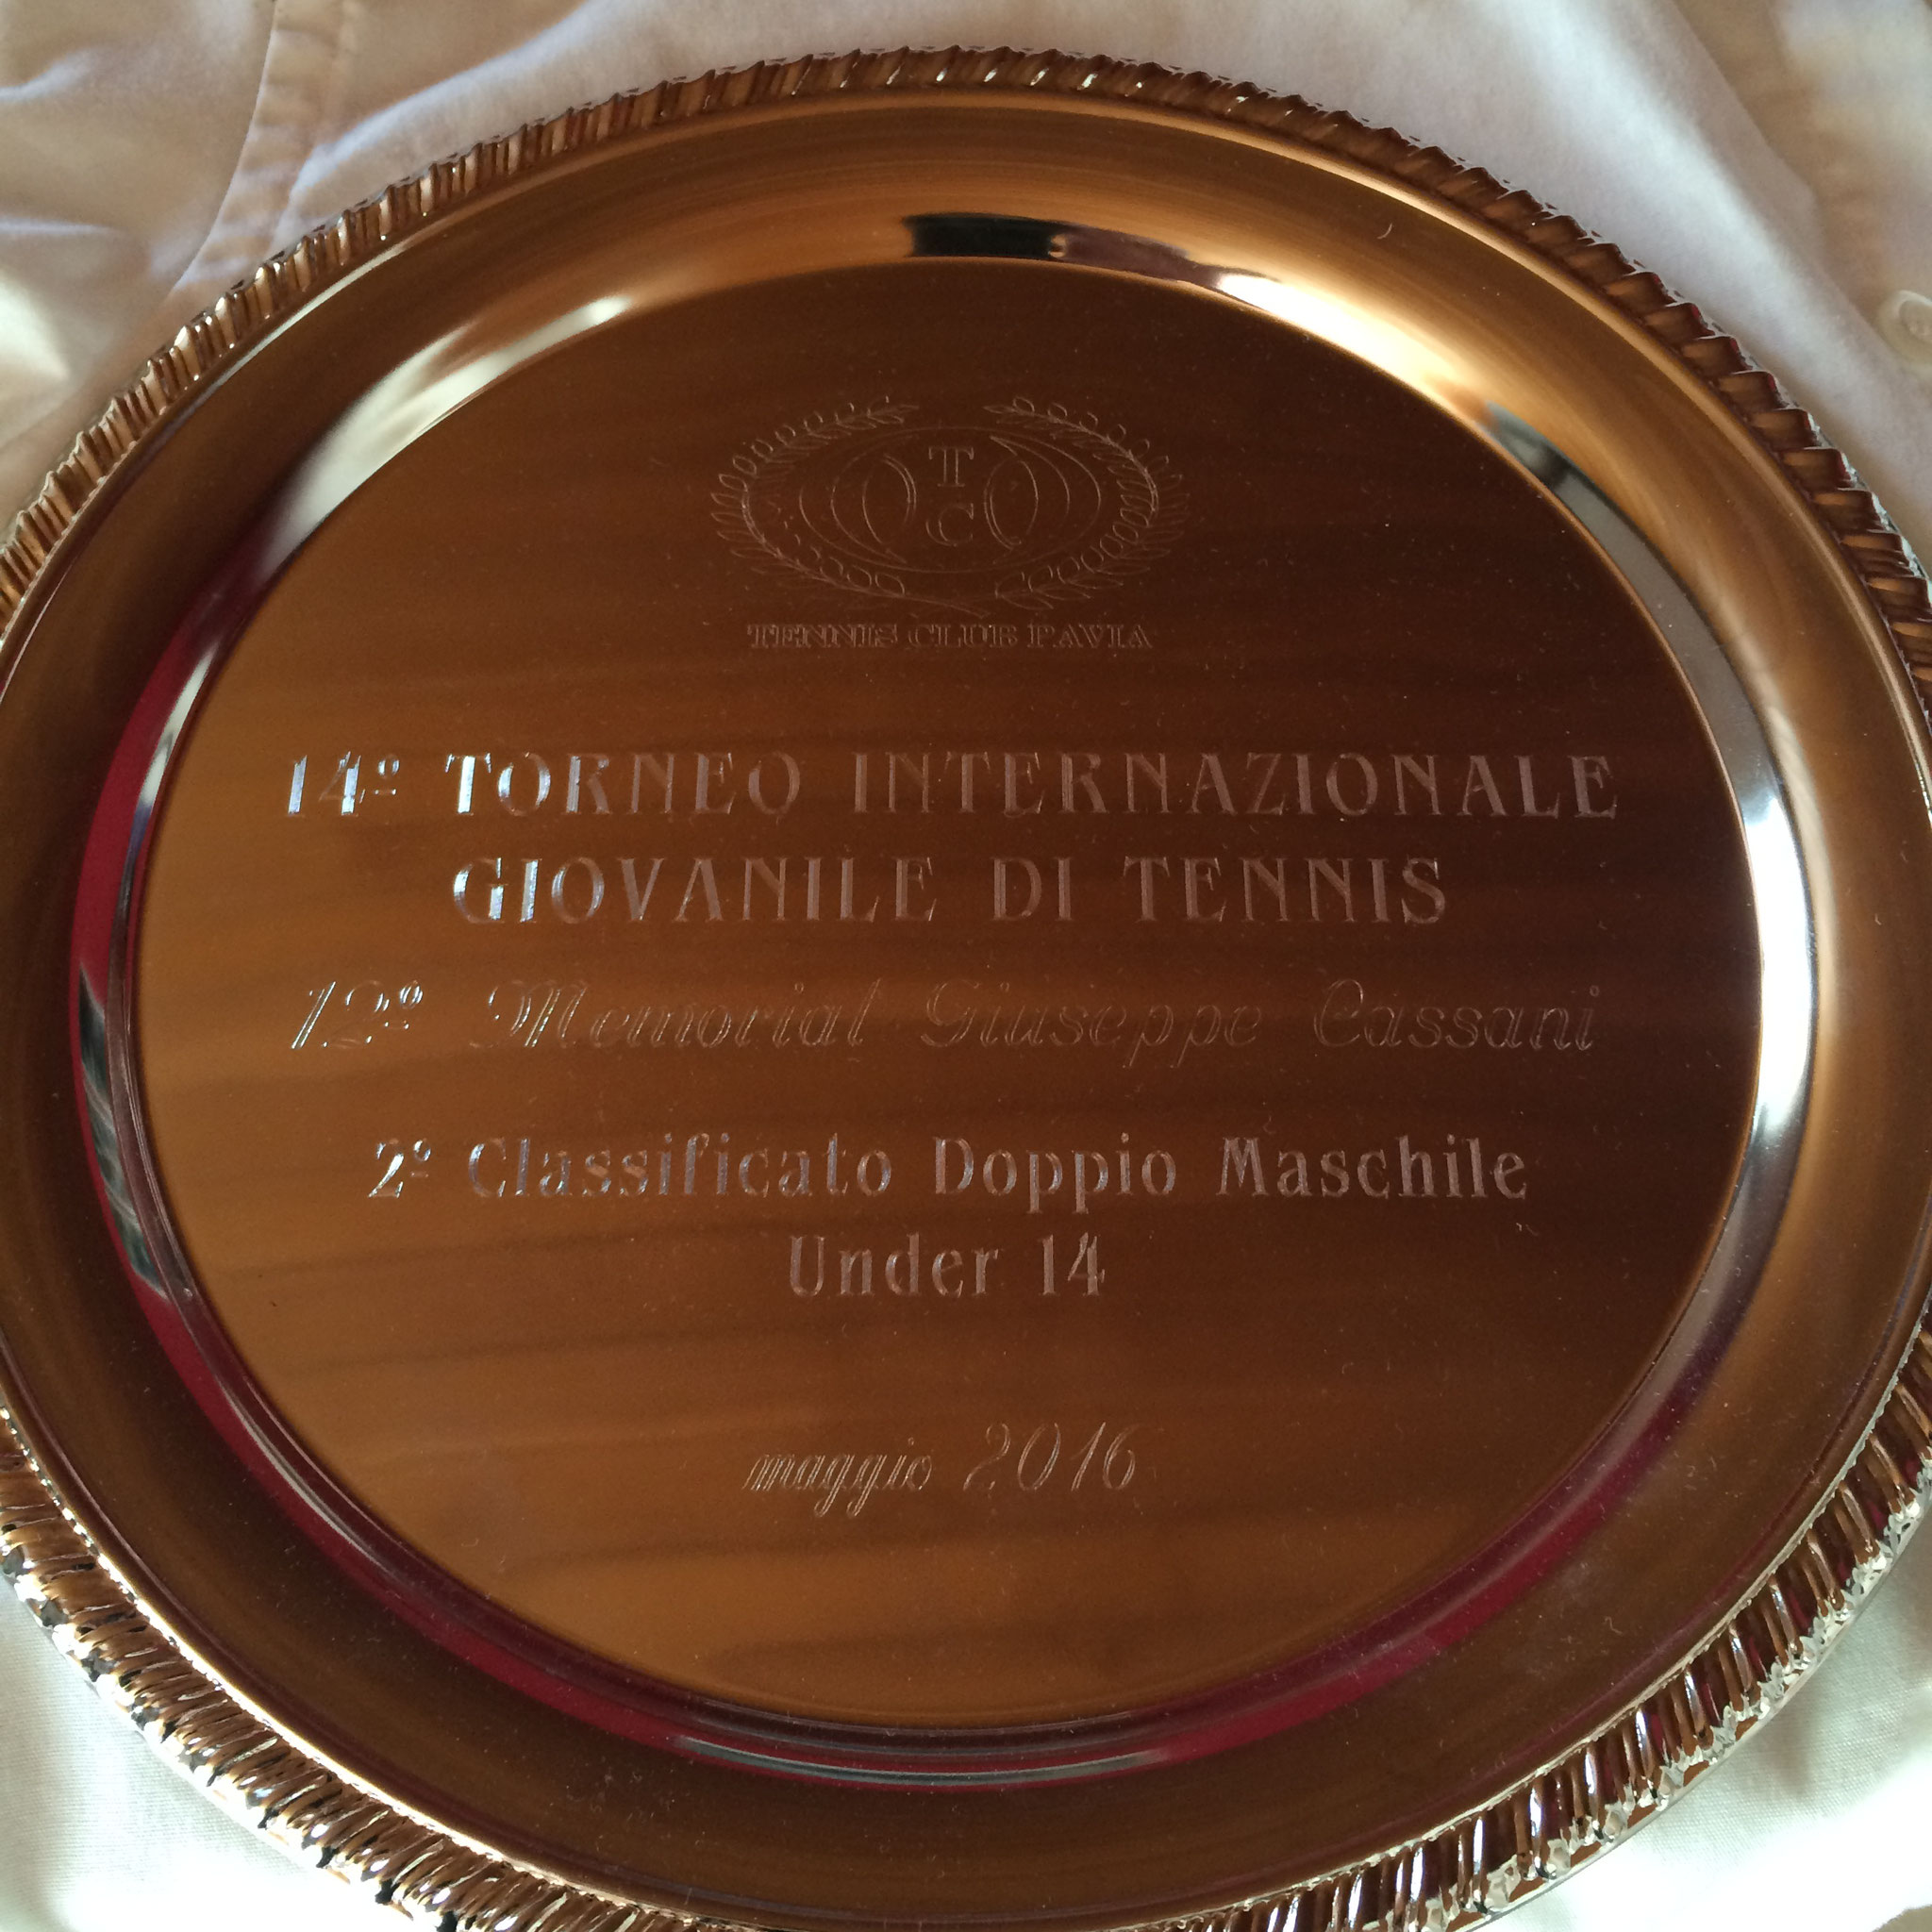 2. Platz MD am 14. Torneo Giovanille di Tennis under 14 in Pavia.